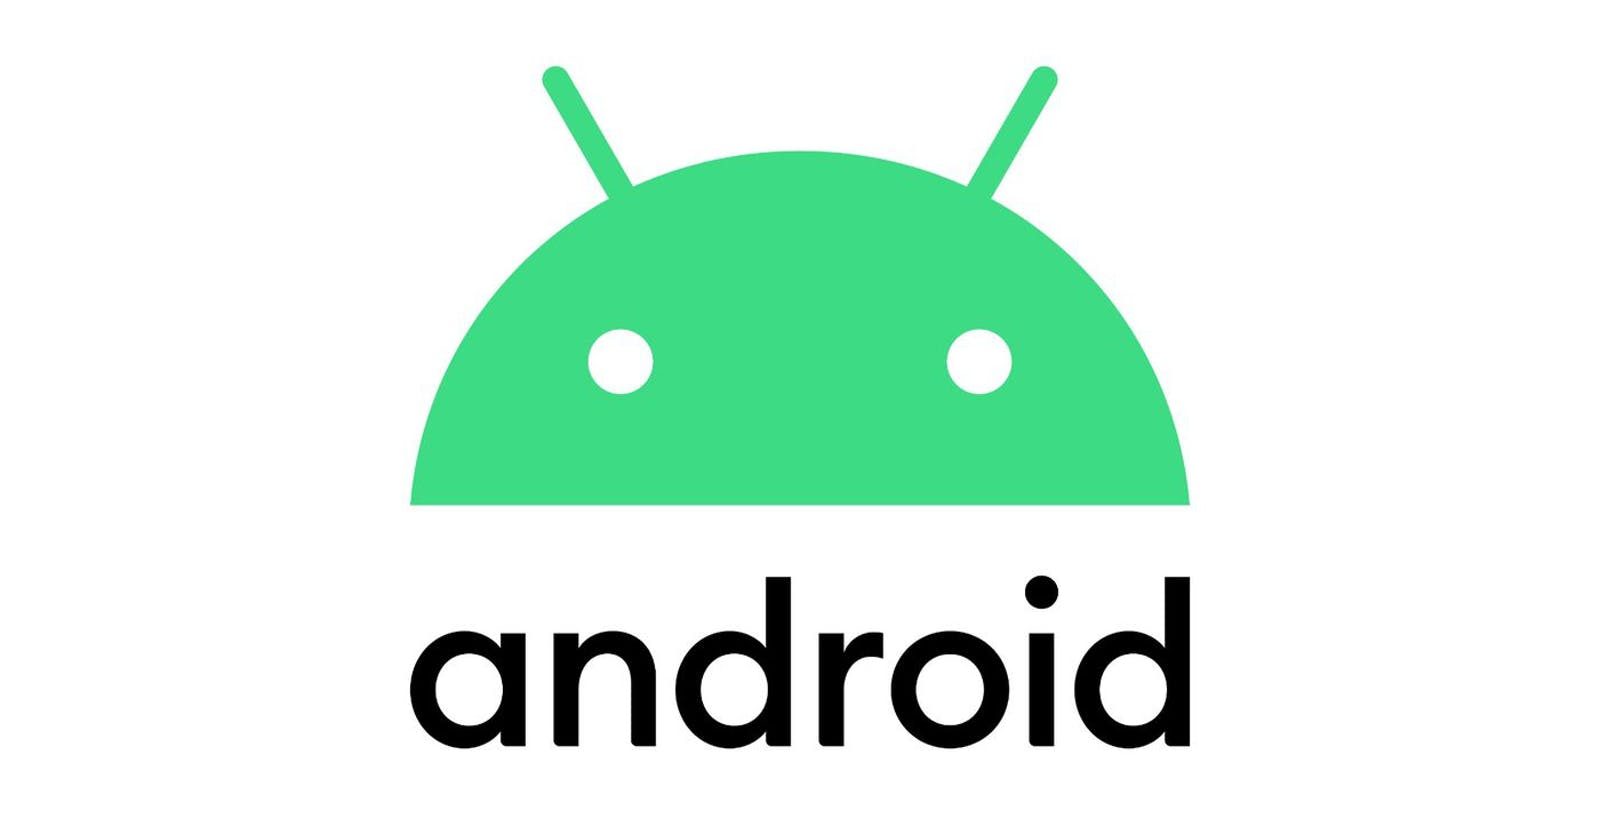 UNIT 1 : Android OS Concepts